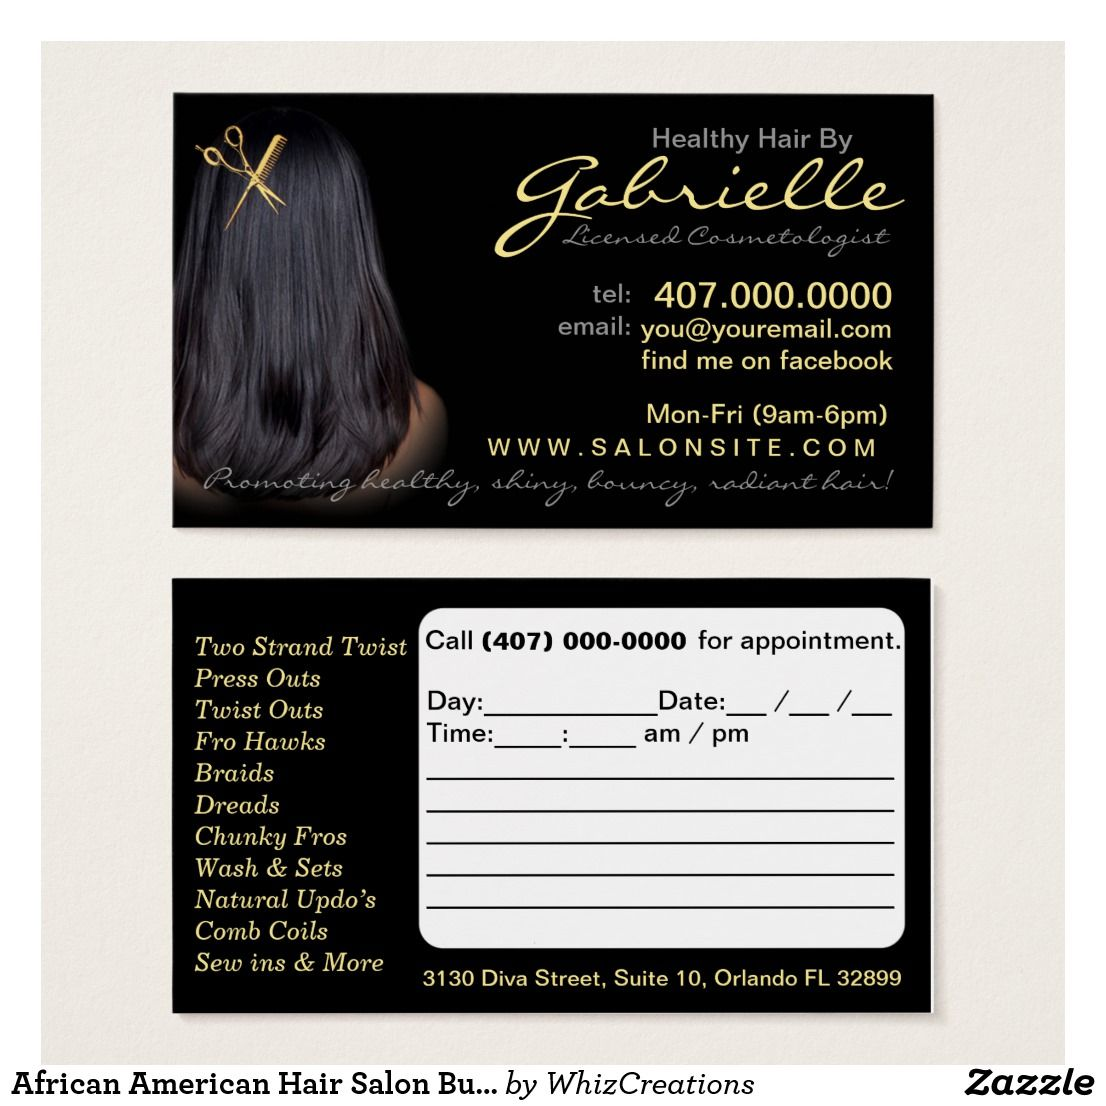 African American Hair Salon Business Cards Zazzle Com African